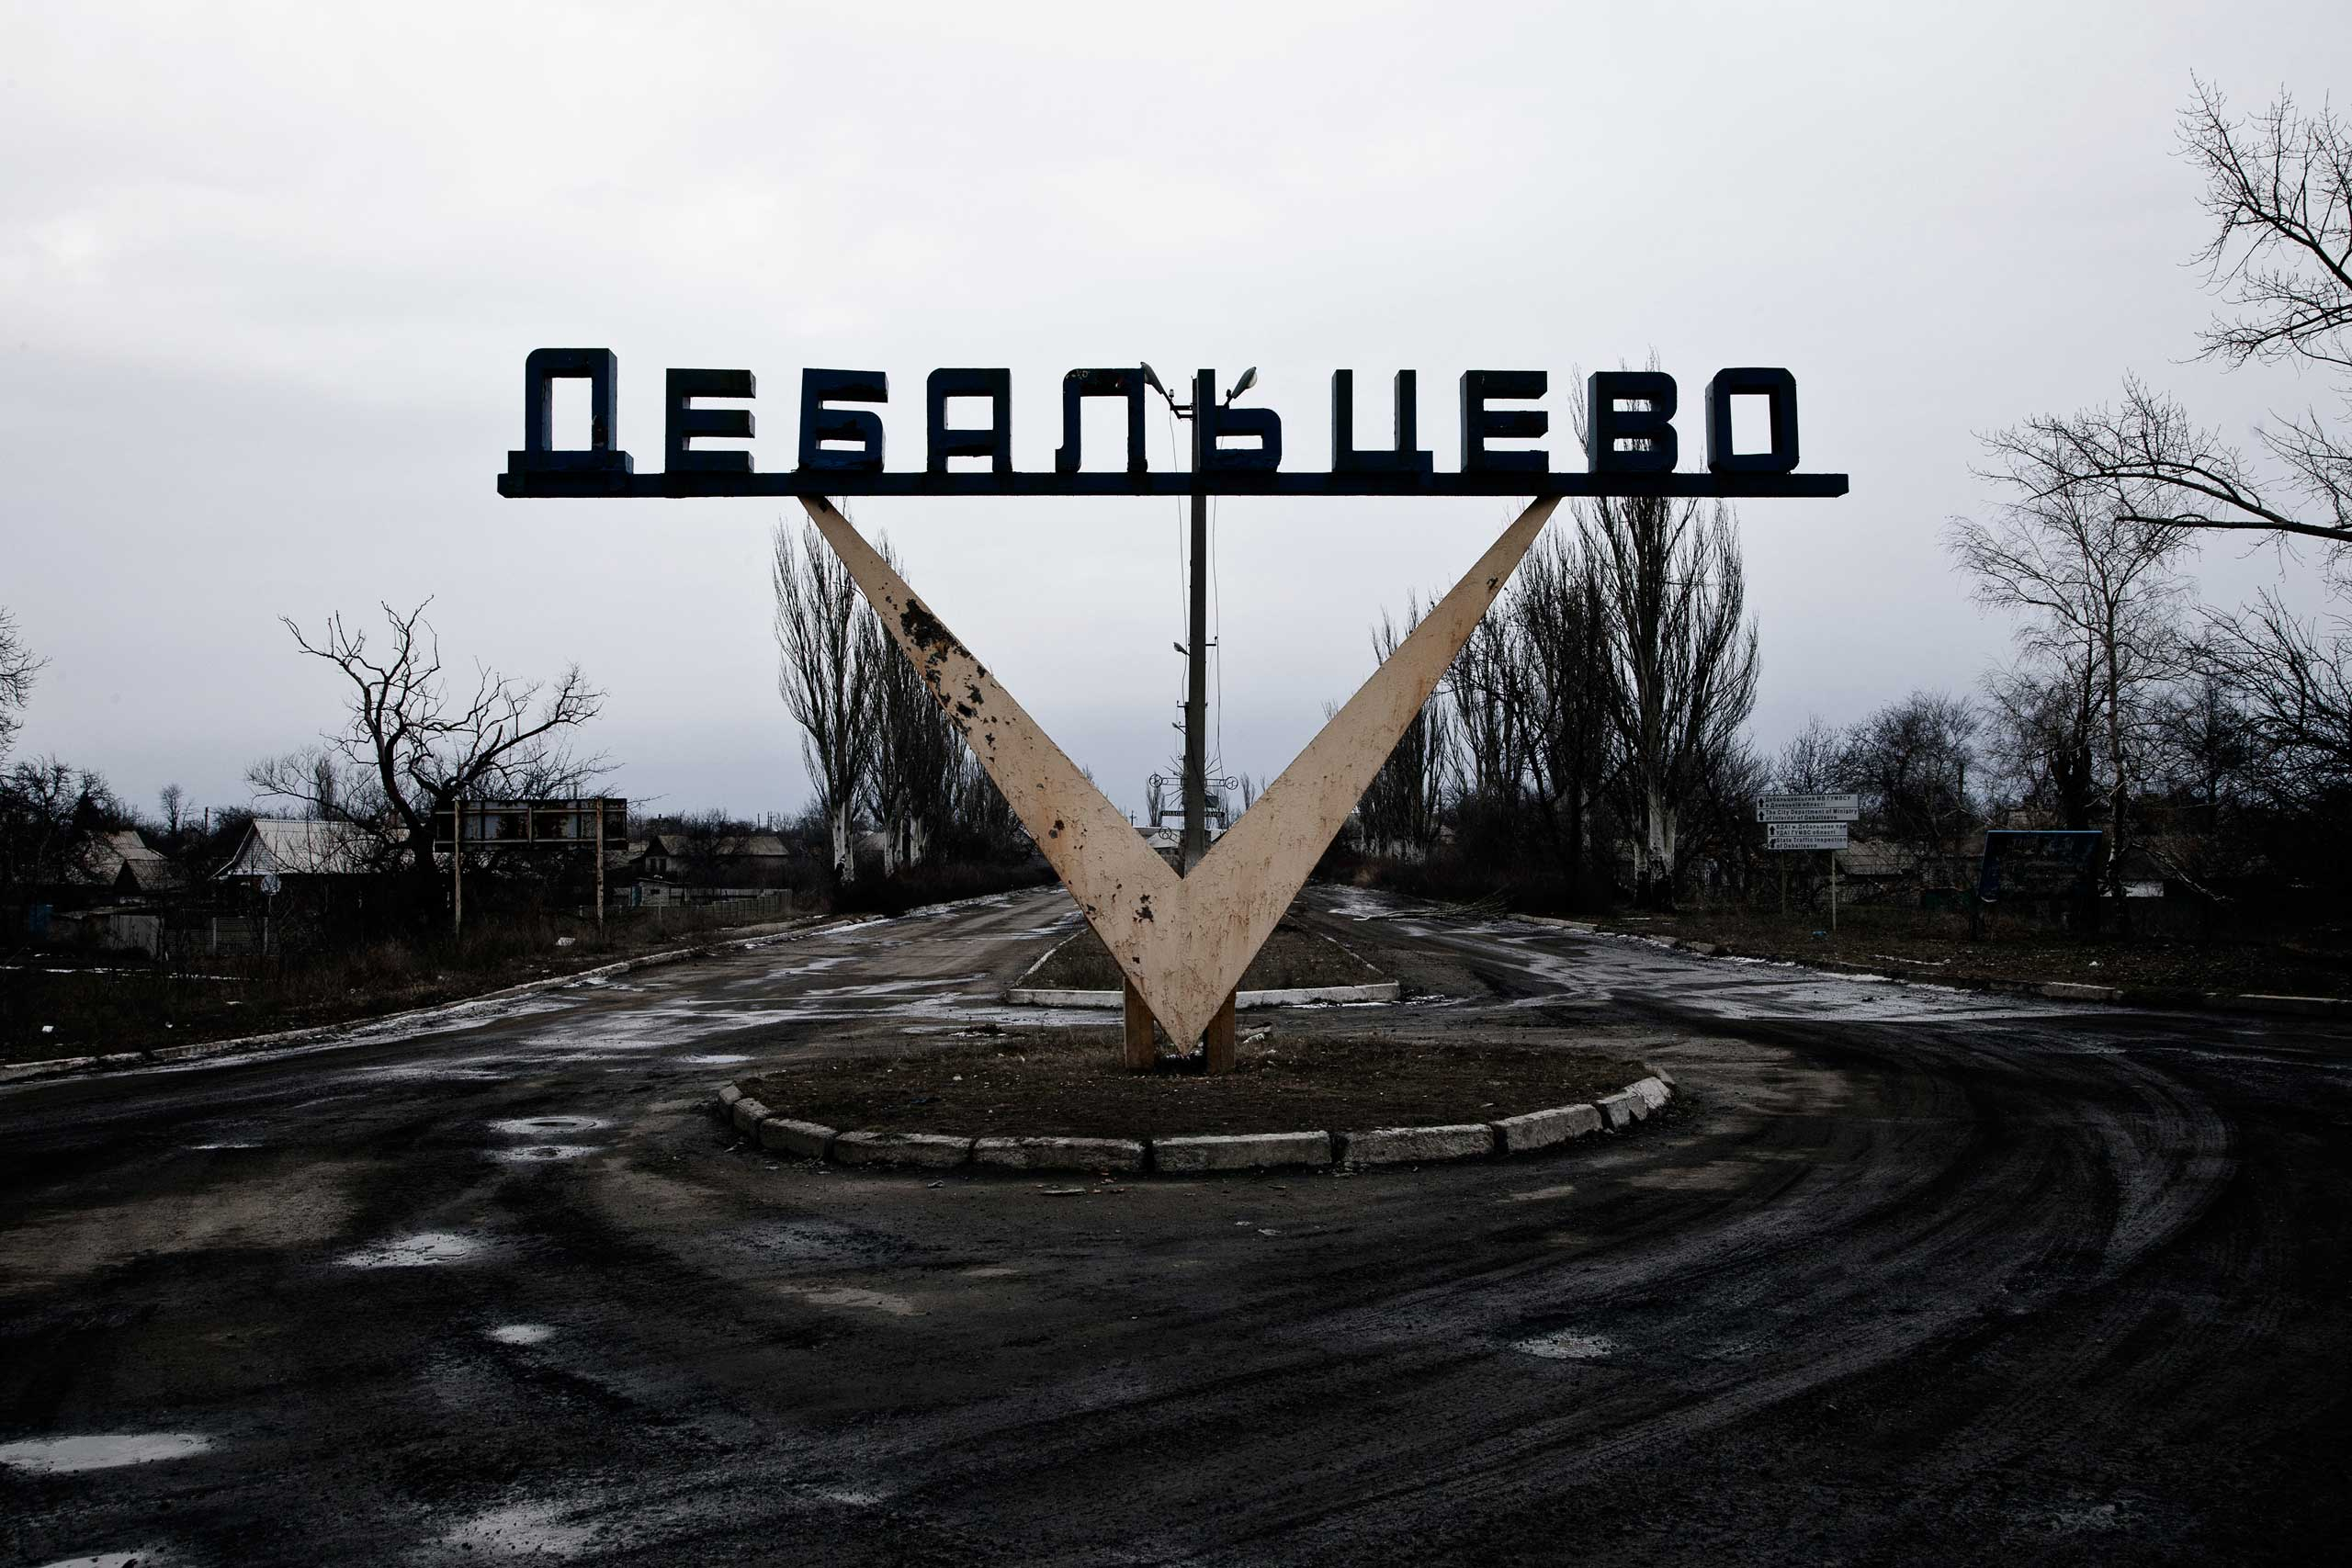 The embattled city of Debaltseve in eastern Ukraine was the site of a massive offensive by rebel forces to wrest it from Ukrainian control. Debaltseve is a strategic town that provides links between Donetsk and Lugansk, the two separatist dominated regions, Feb. 5, 2015.